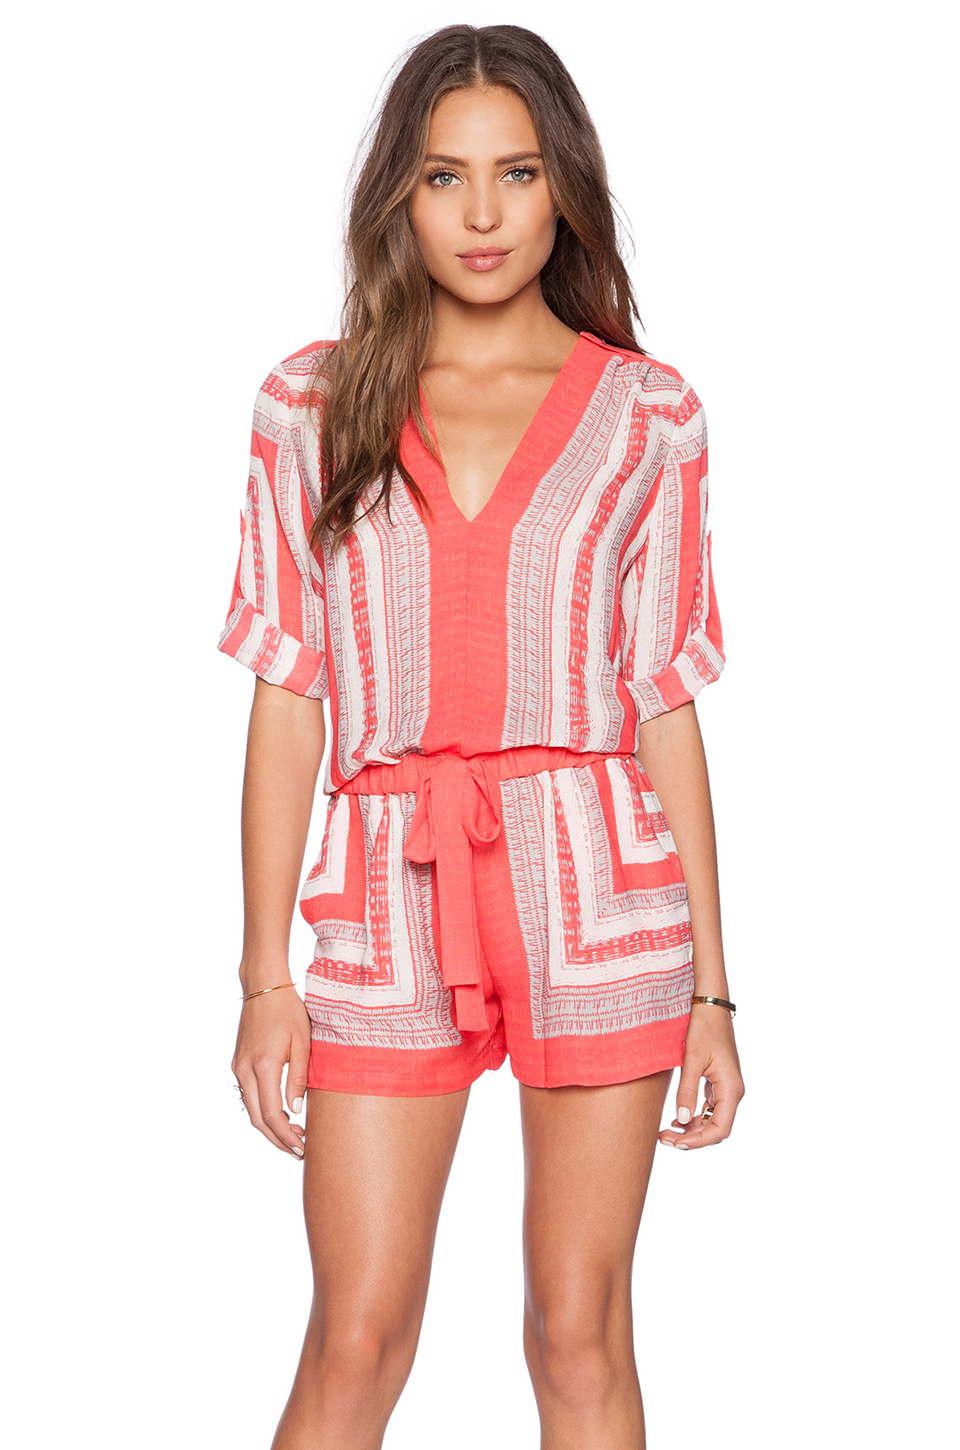 a2ec7cd0ab48c0 Rompers are always a cute alternative to a dress in the warm weather. Love  this one by BCBG!